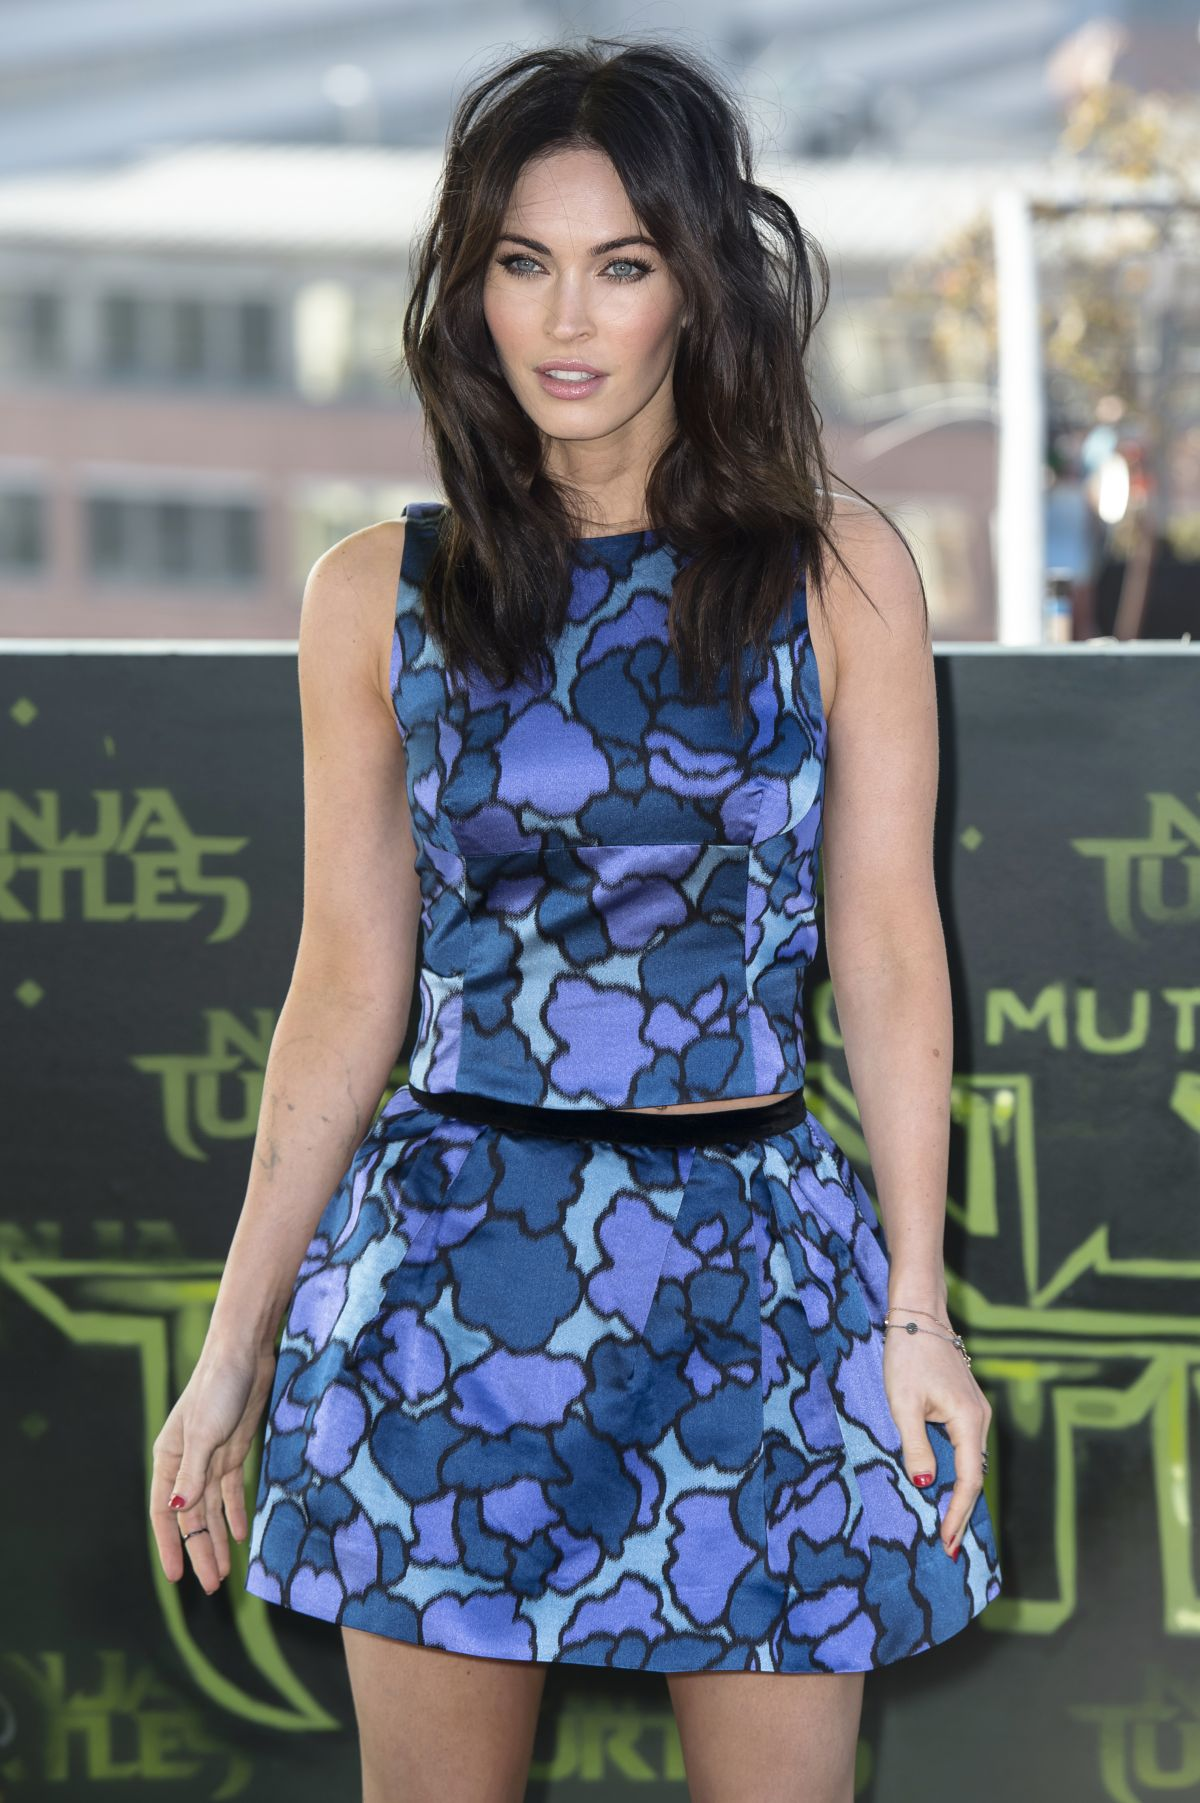 MEGAN FOX at Teenage Mutant Ninja Turtles Photocall in Berlin